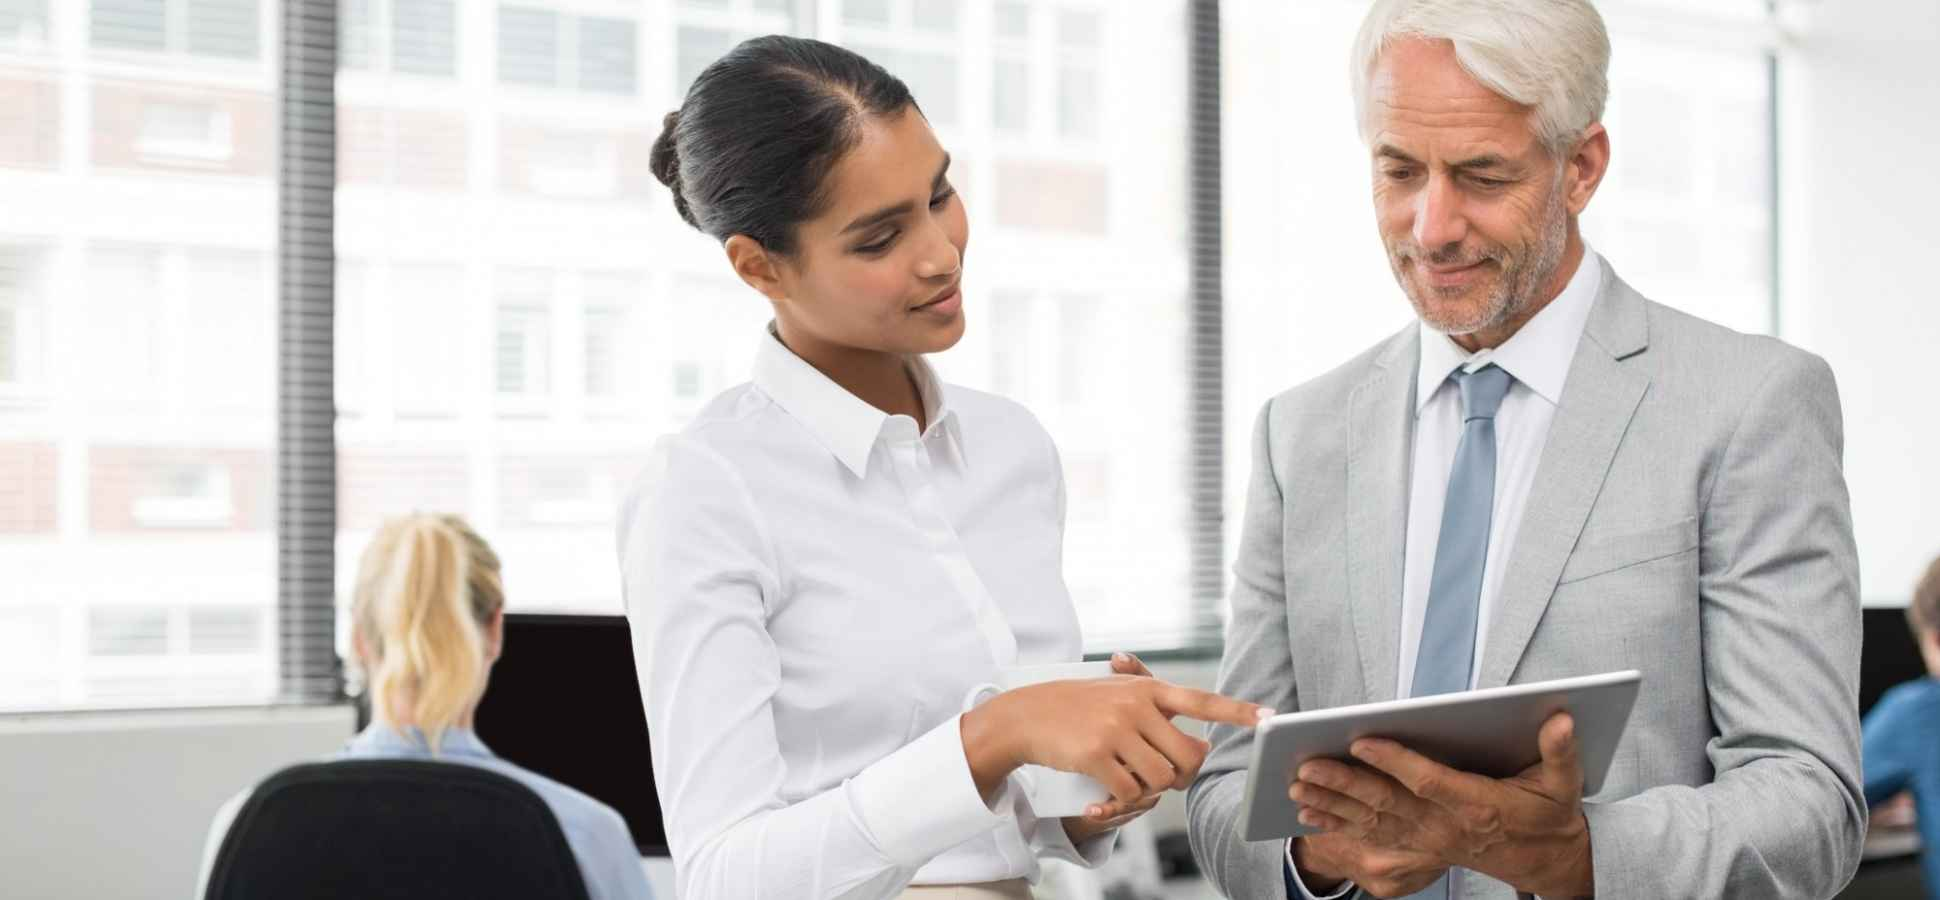 27 Things to Delegate to Your Assistant to Make Your Life Smoother, Faster, and Better